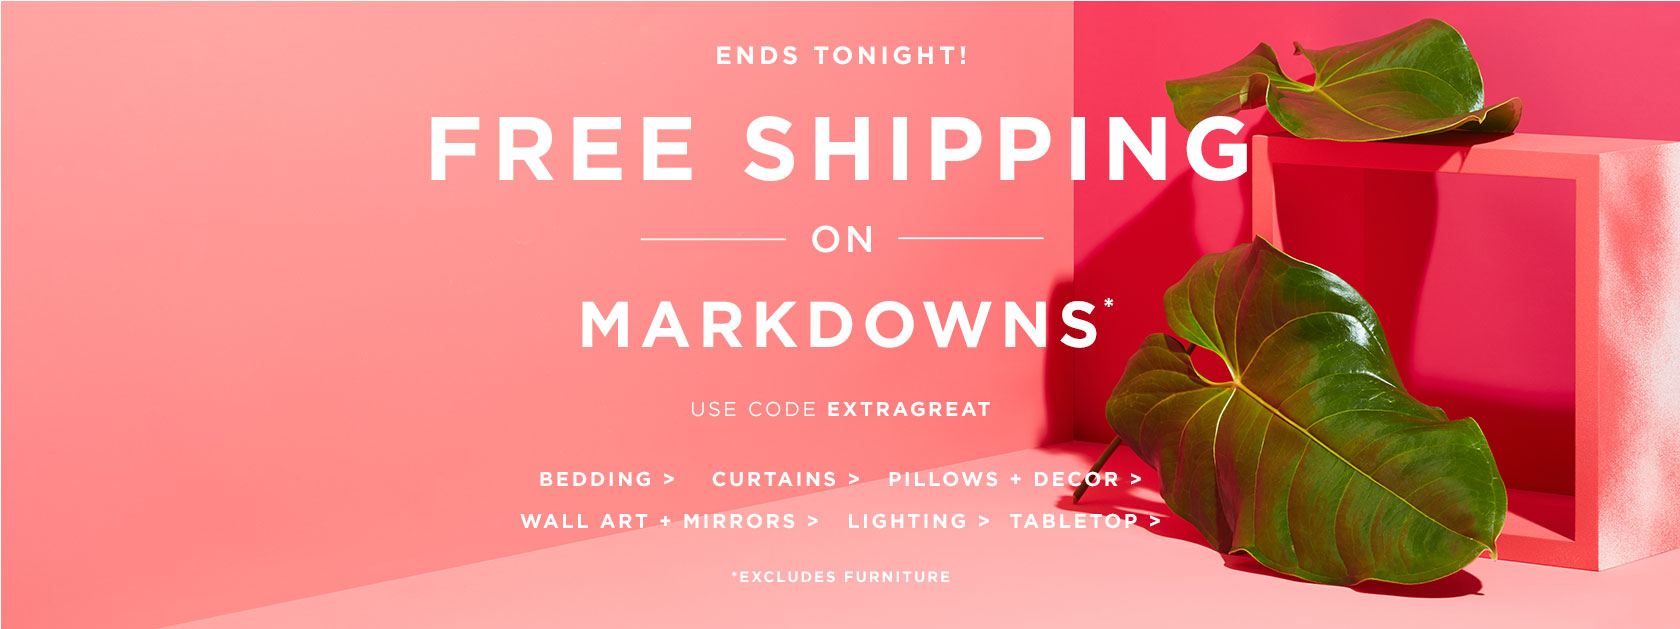 Ends Tonight! Free Shipping On Markdowns! Use Code EXTRAGREAT